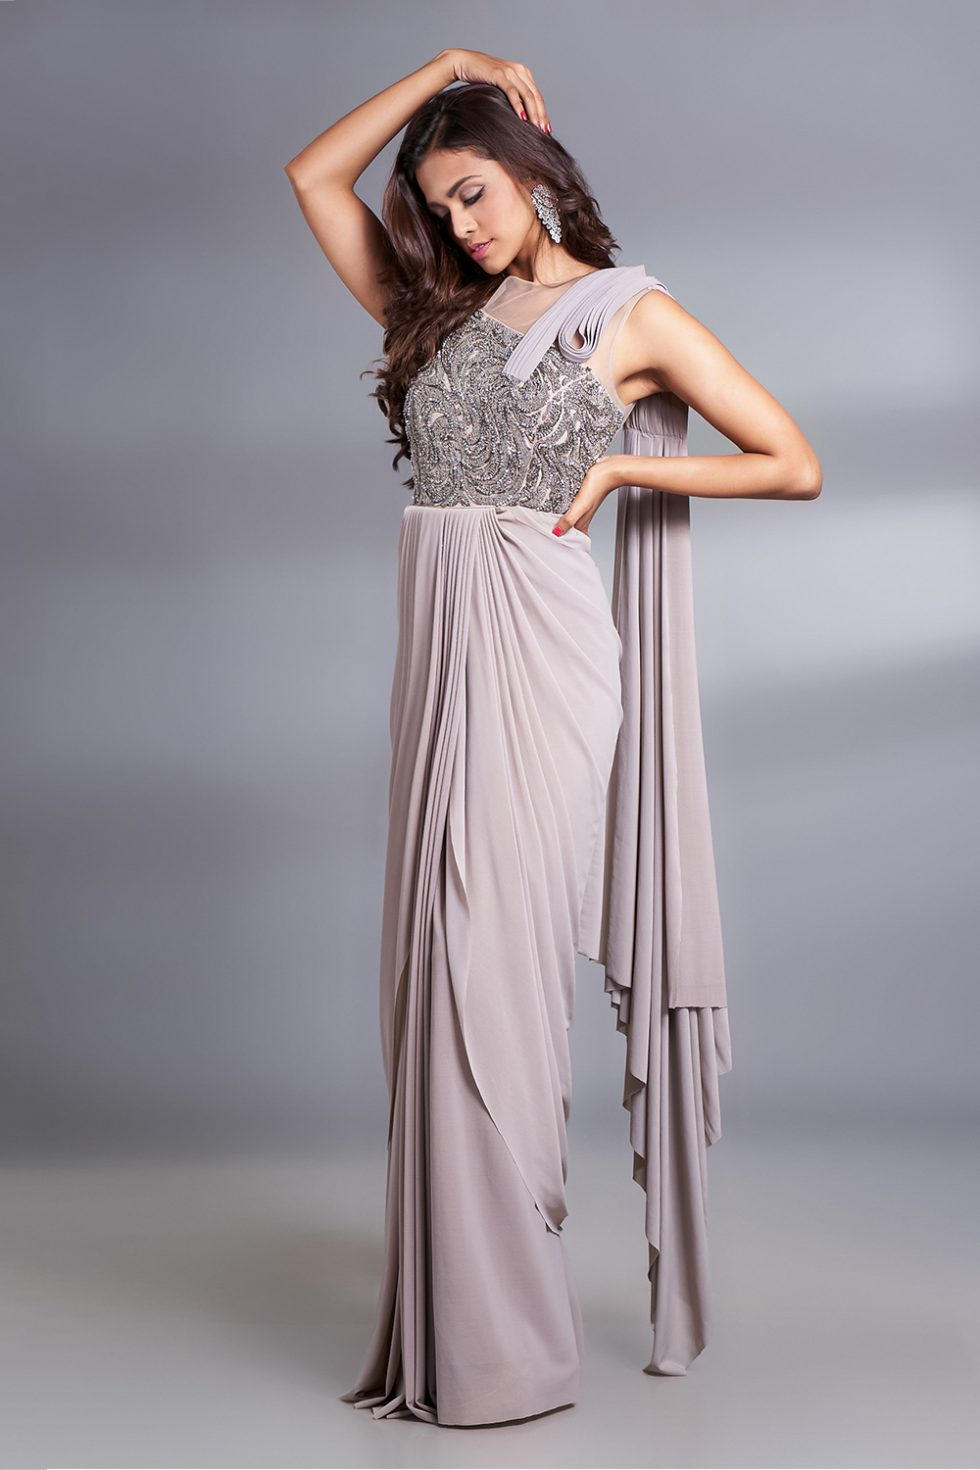 Stone grey draped saree gown with a hand embroidered metallic work bodice and a 3D detailed attached pallu.